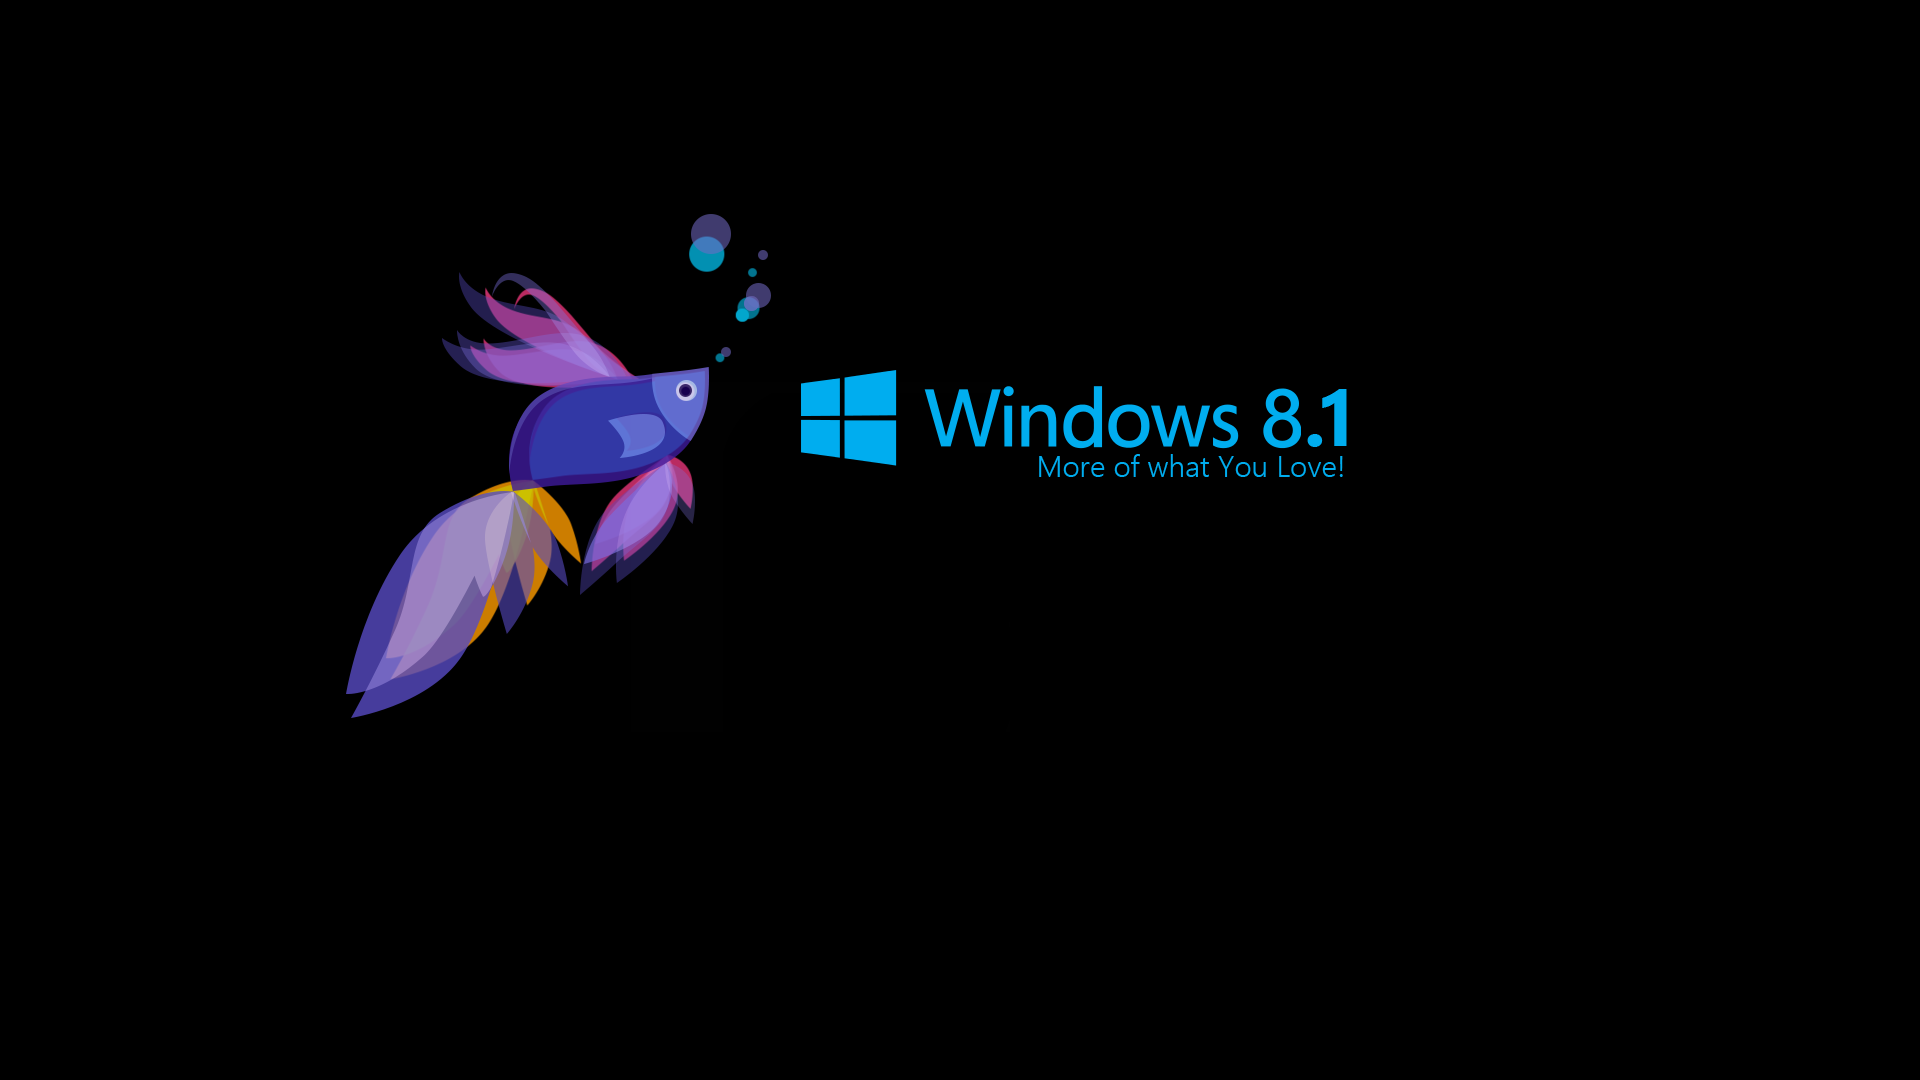 new windows 8 hd wallpapers - photo #42